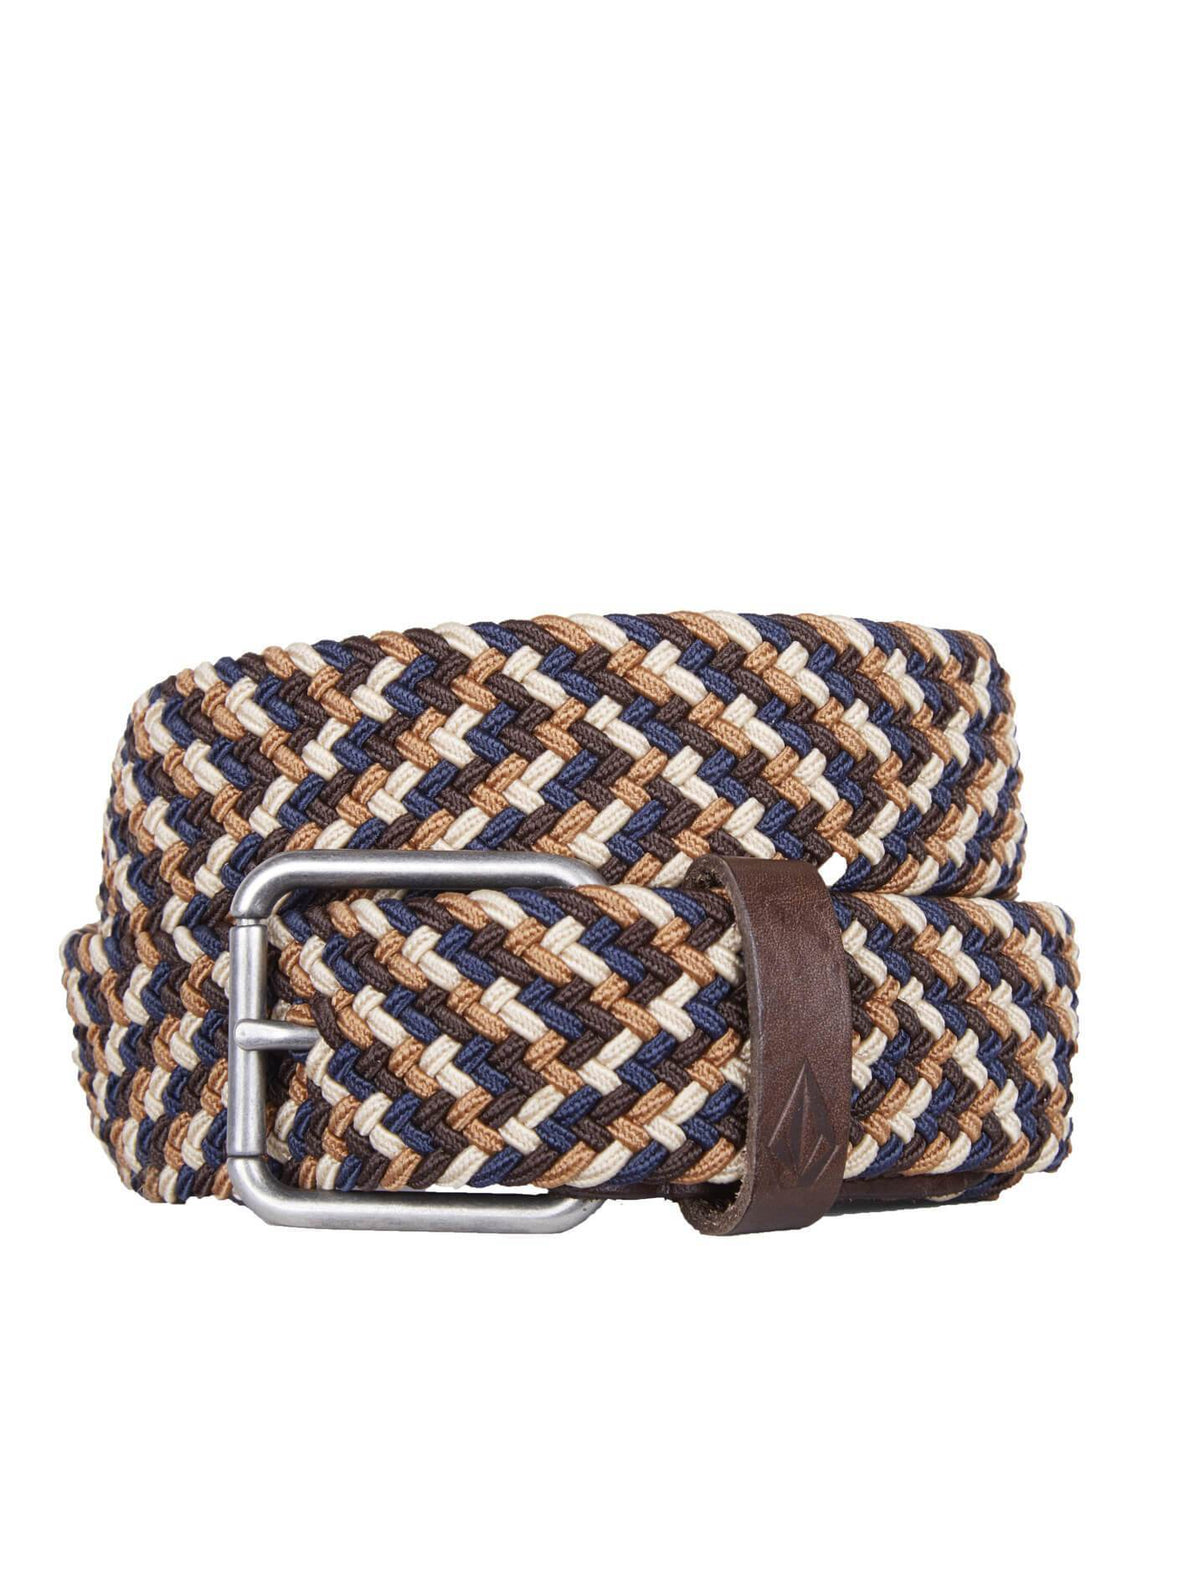 KRUPA WEB BELT COPPER